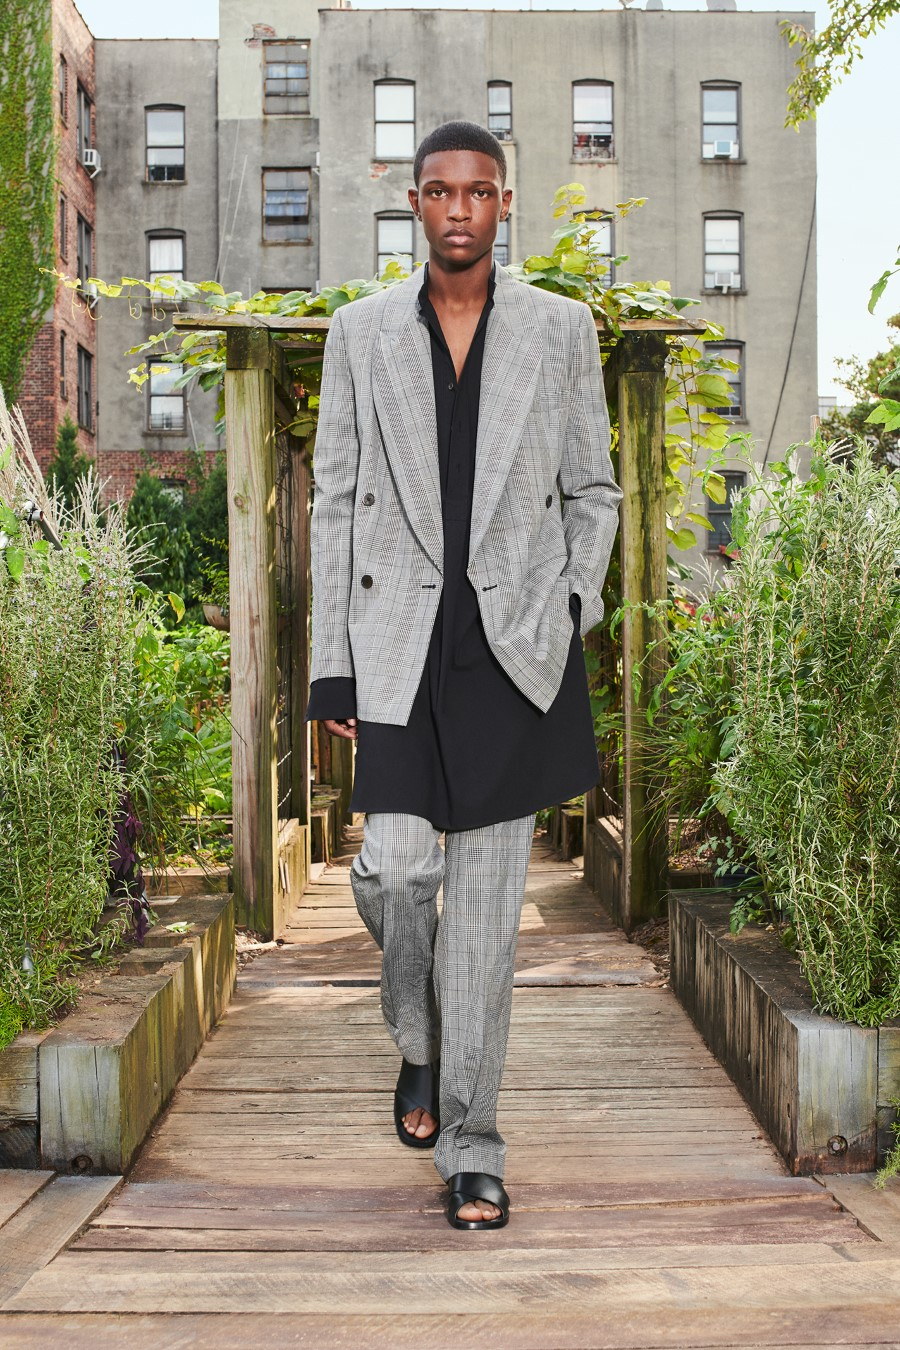 Michael Kors Collection Spring Summer 2021Michael Kors Collection Spring Summer 2021